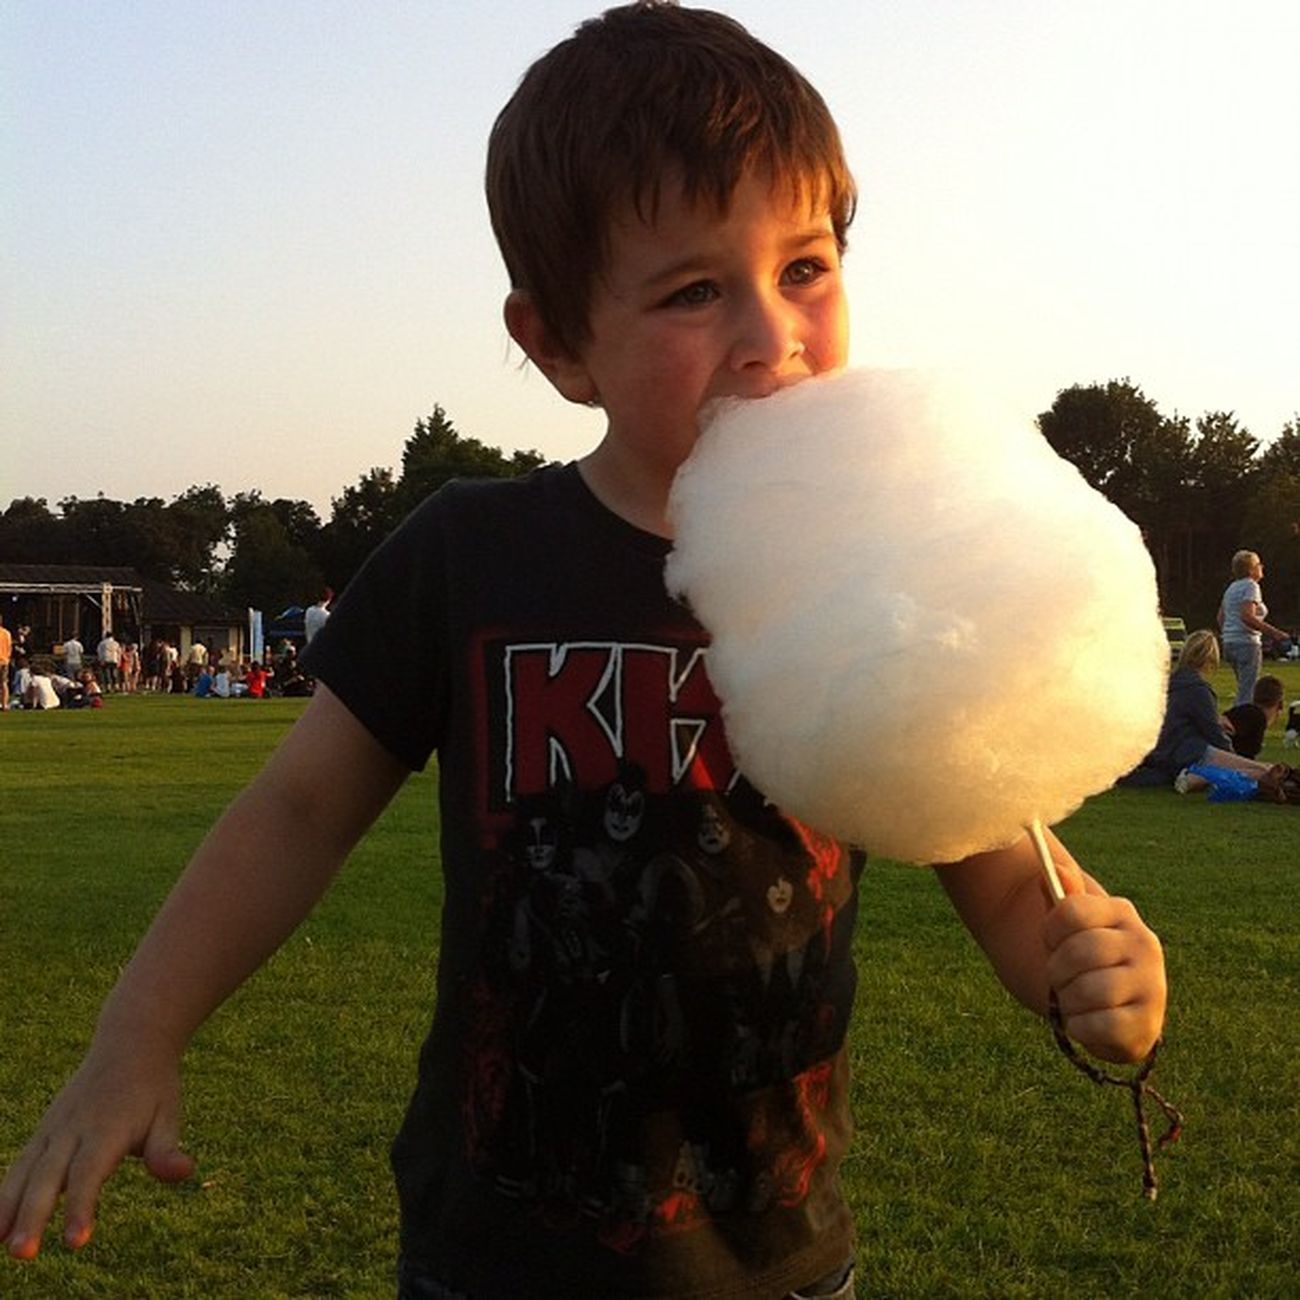 Sunset cotton candy #miniG #rockontherec #harborough Minig Harborough Rockontherec